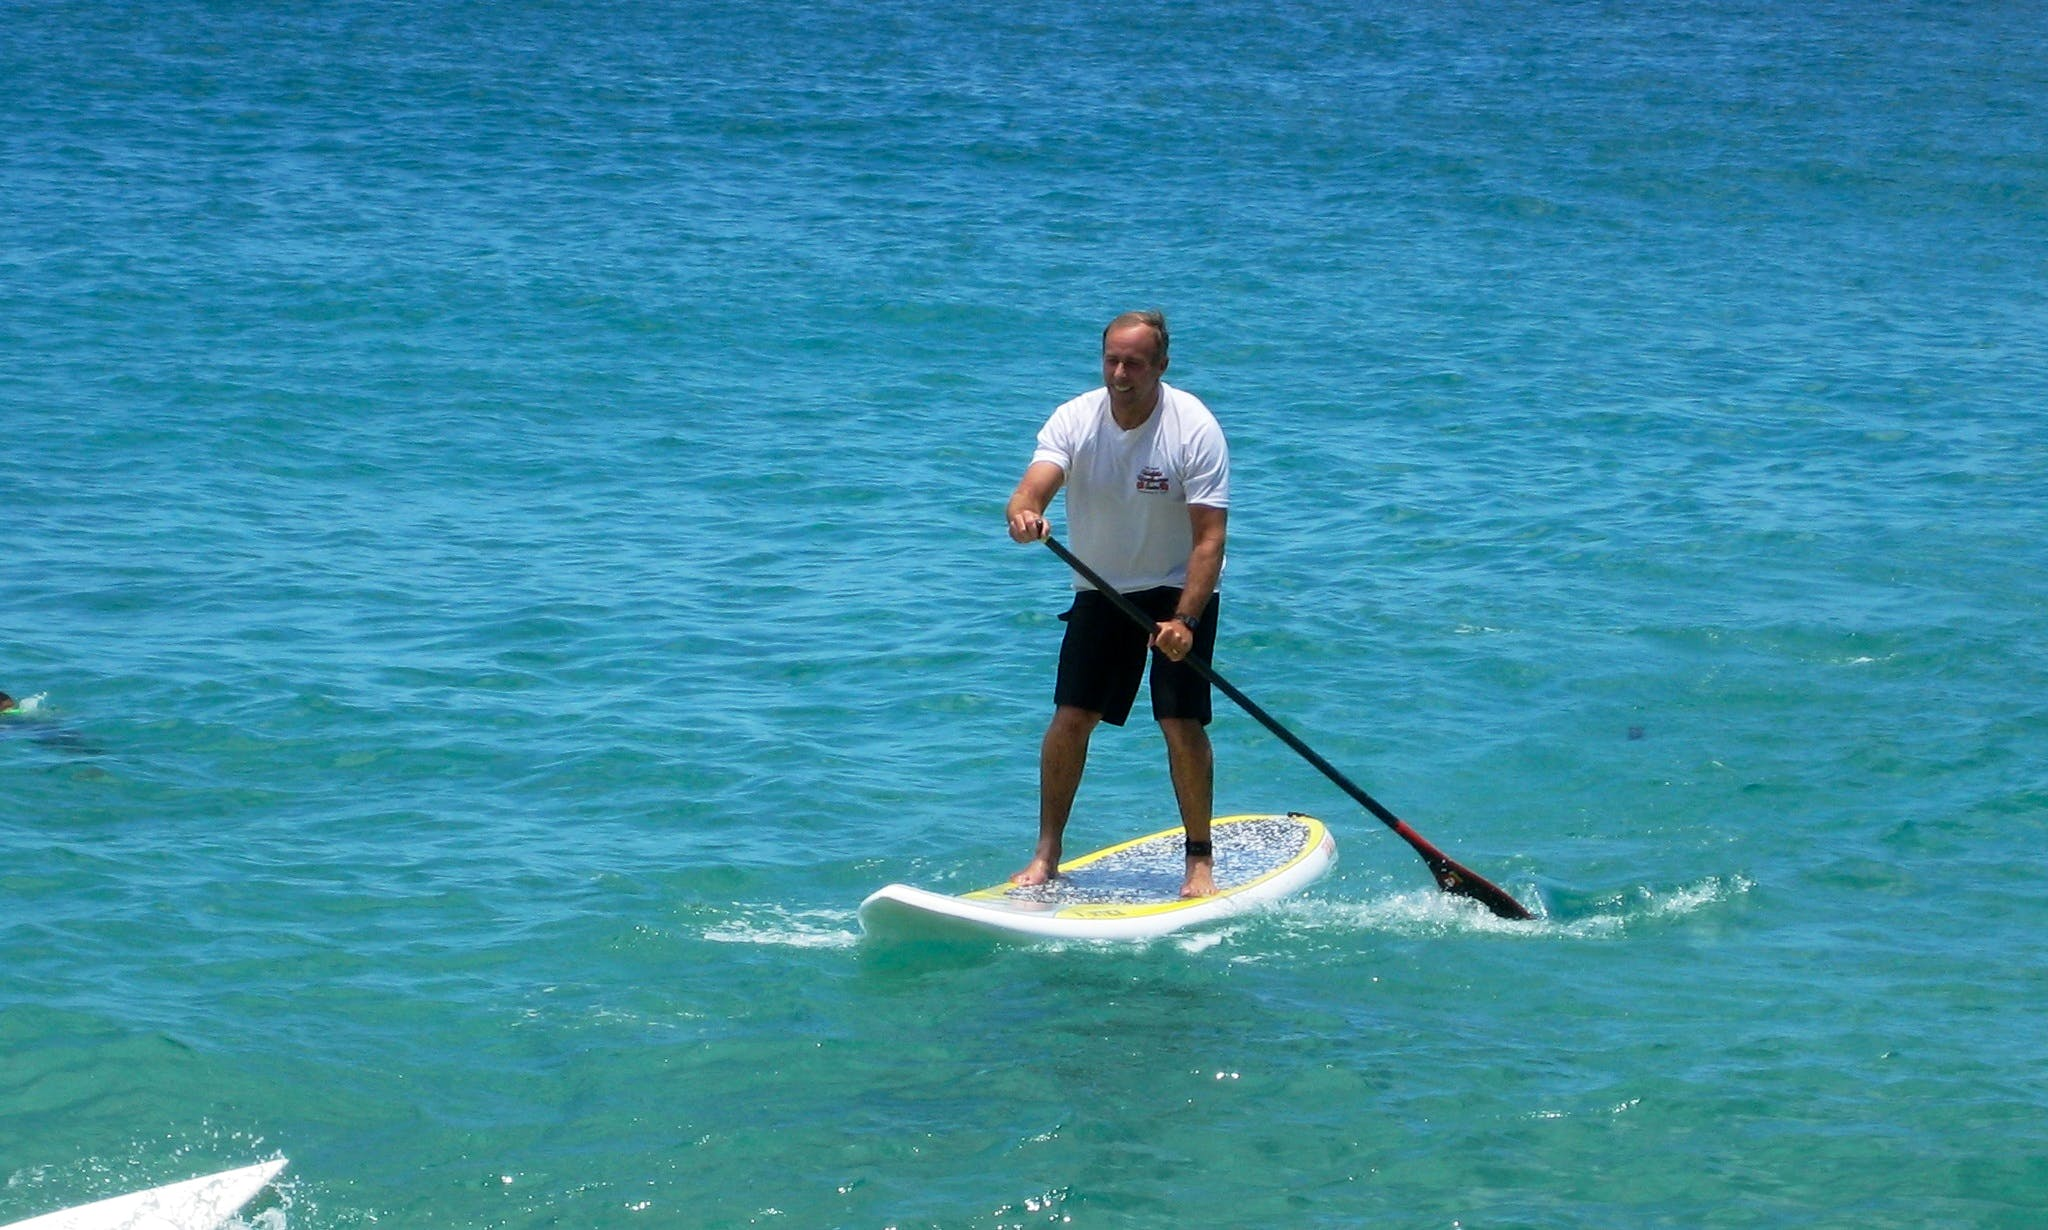 Paddleboard Rental in Kaikoura - New Zealand